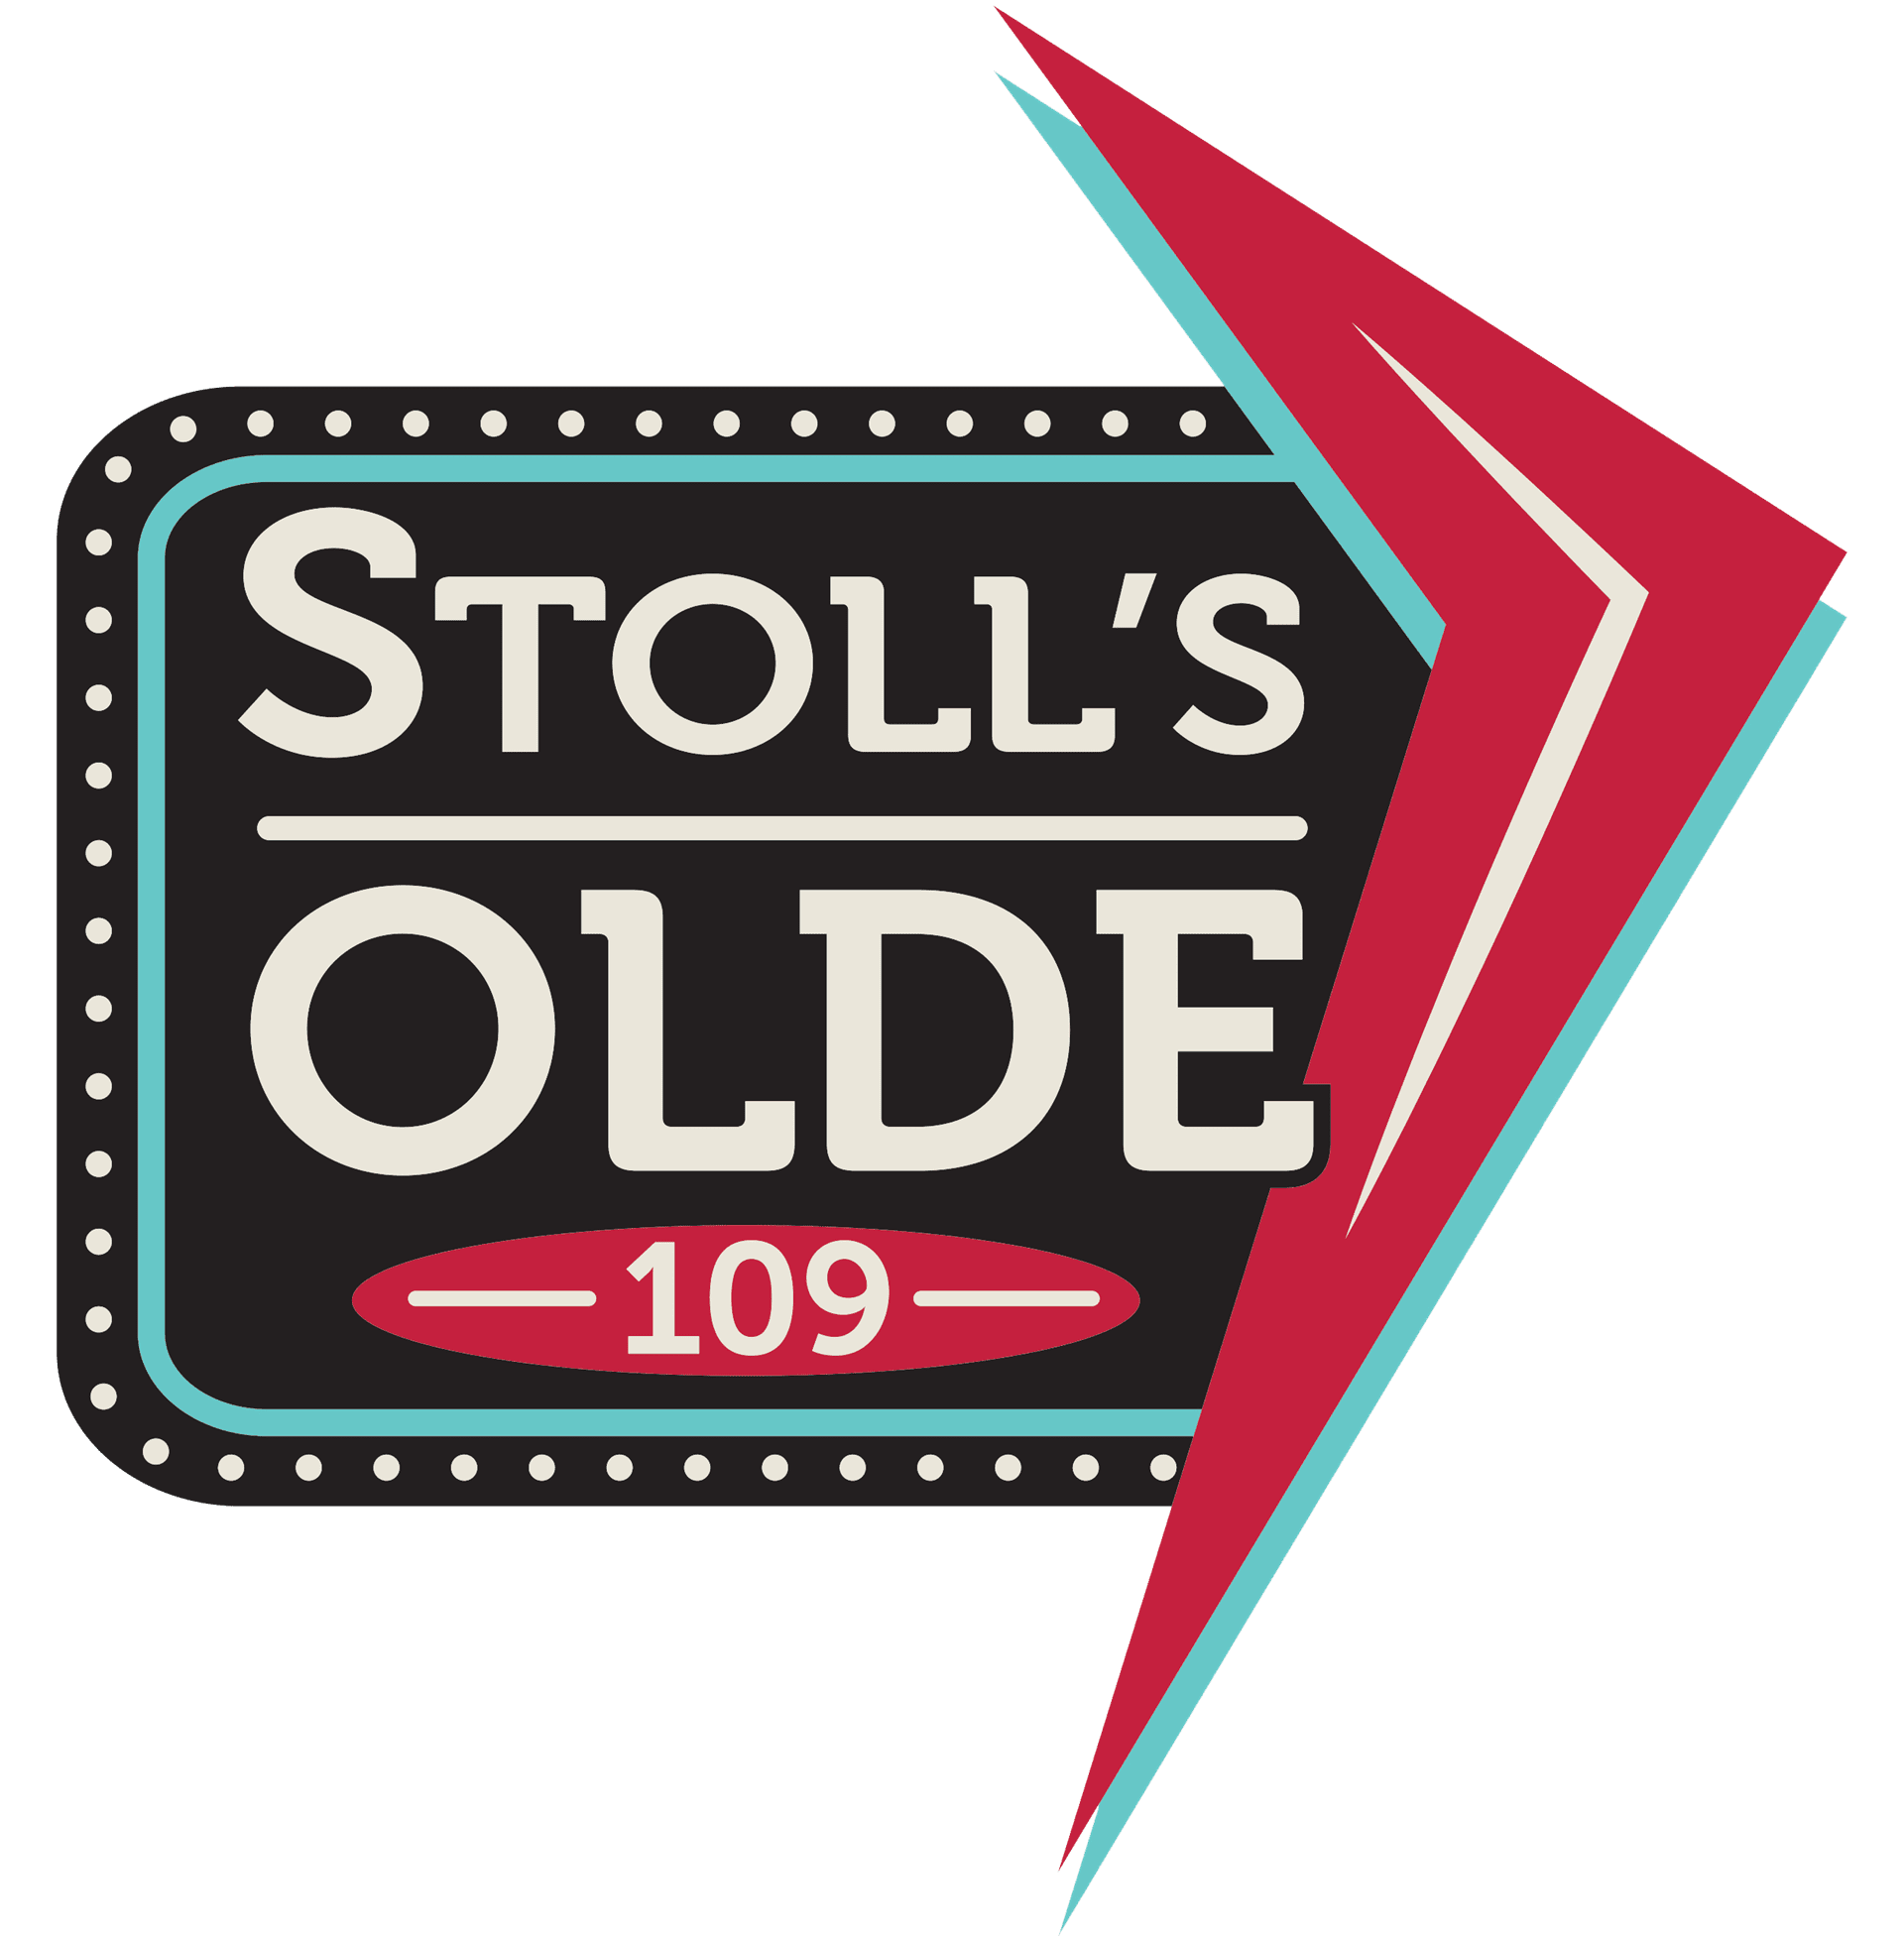 Stoll's Olde 109